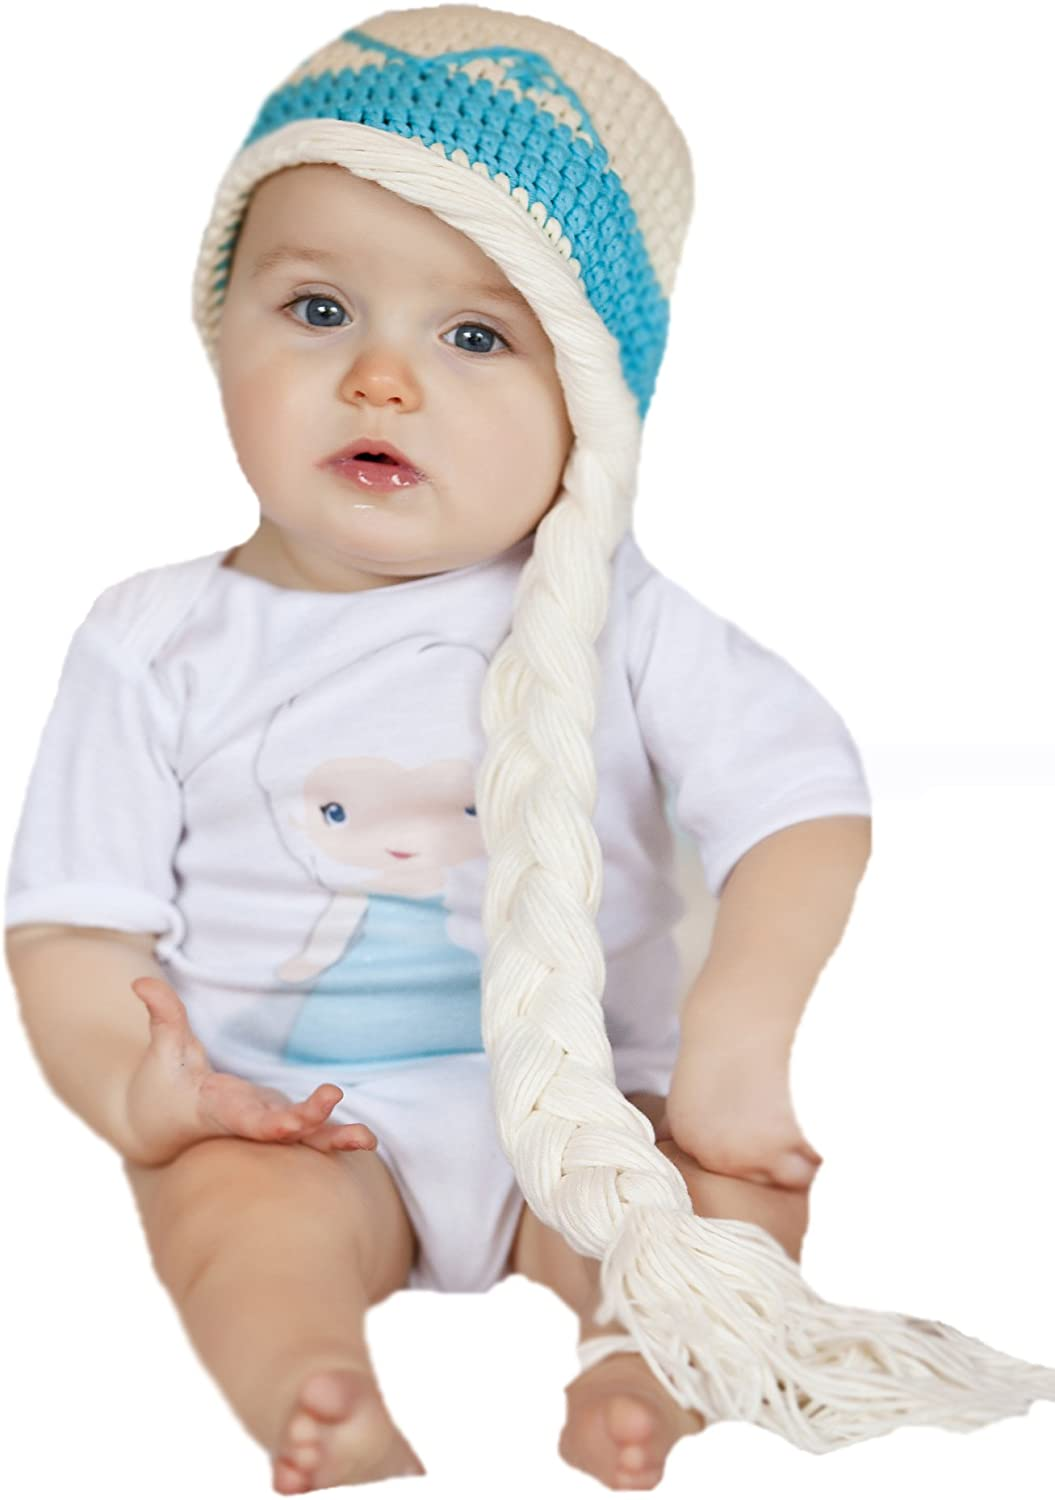 baby gift braids princess white canadian shops gift unisex gift ice 6-12m baby hat girly blue ready to ship handmade crochet